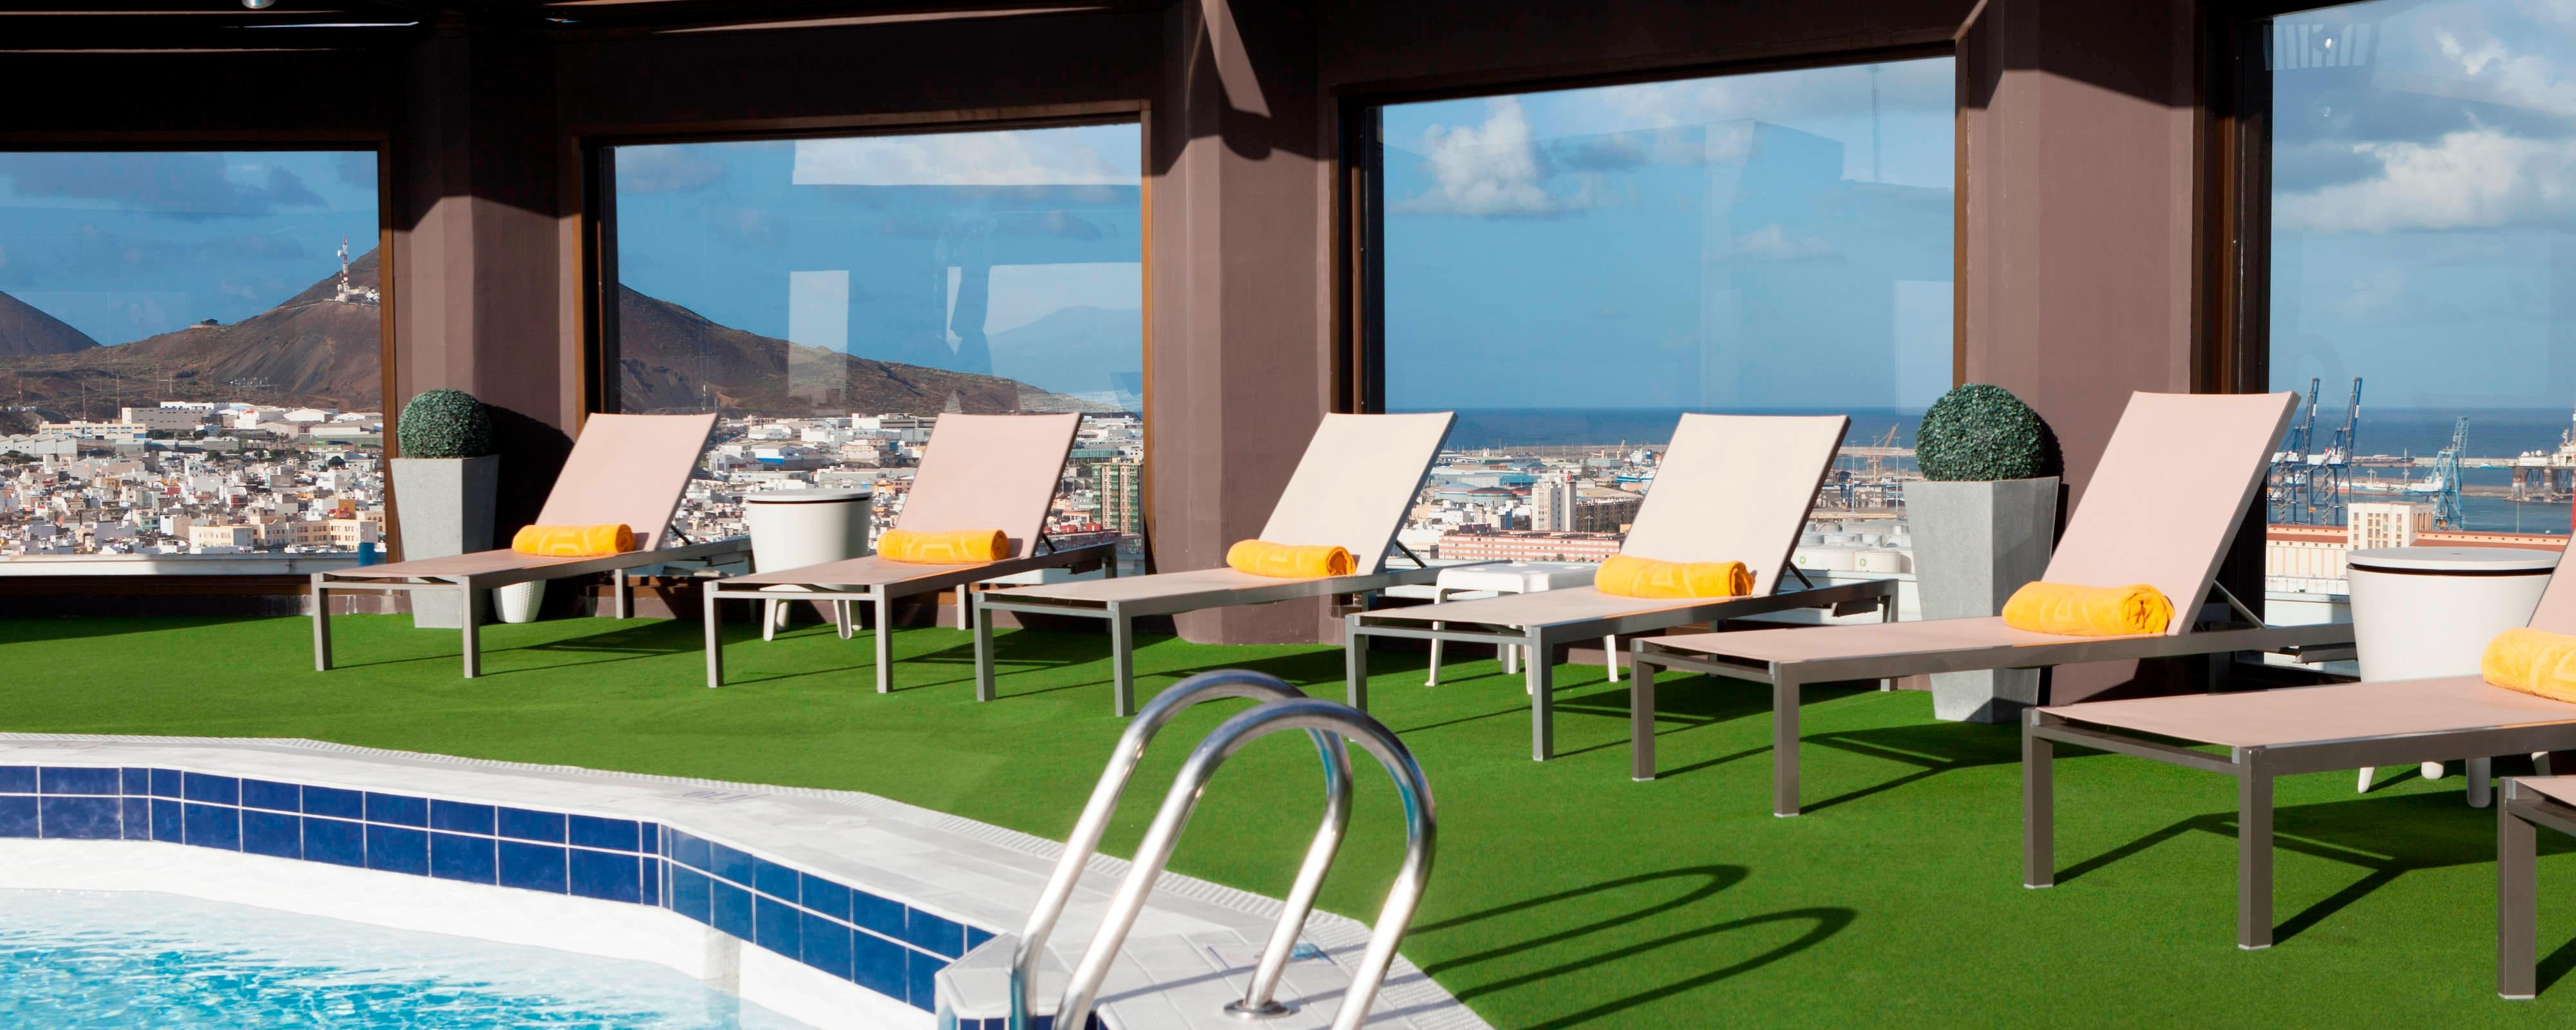 Swimming Pool Hotel AC Gran Canaria